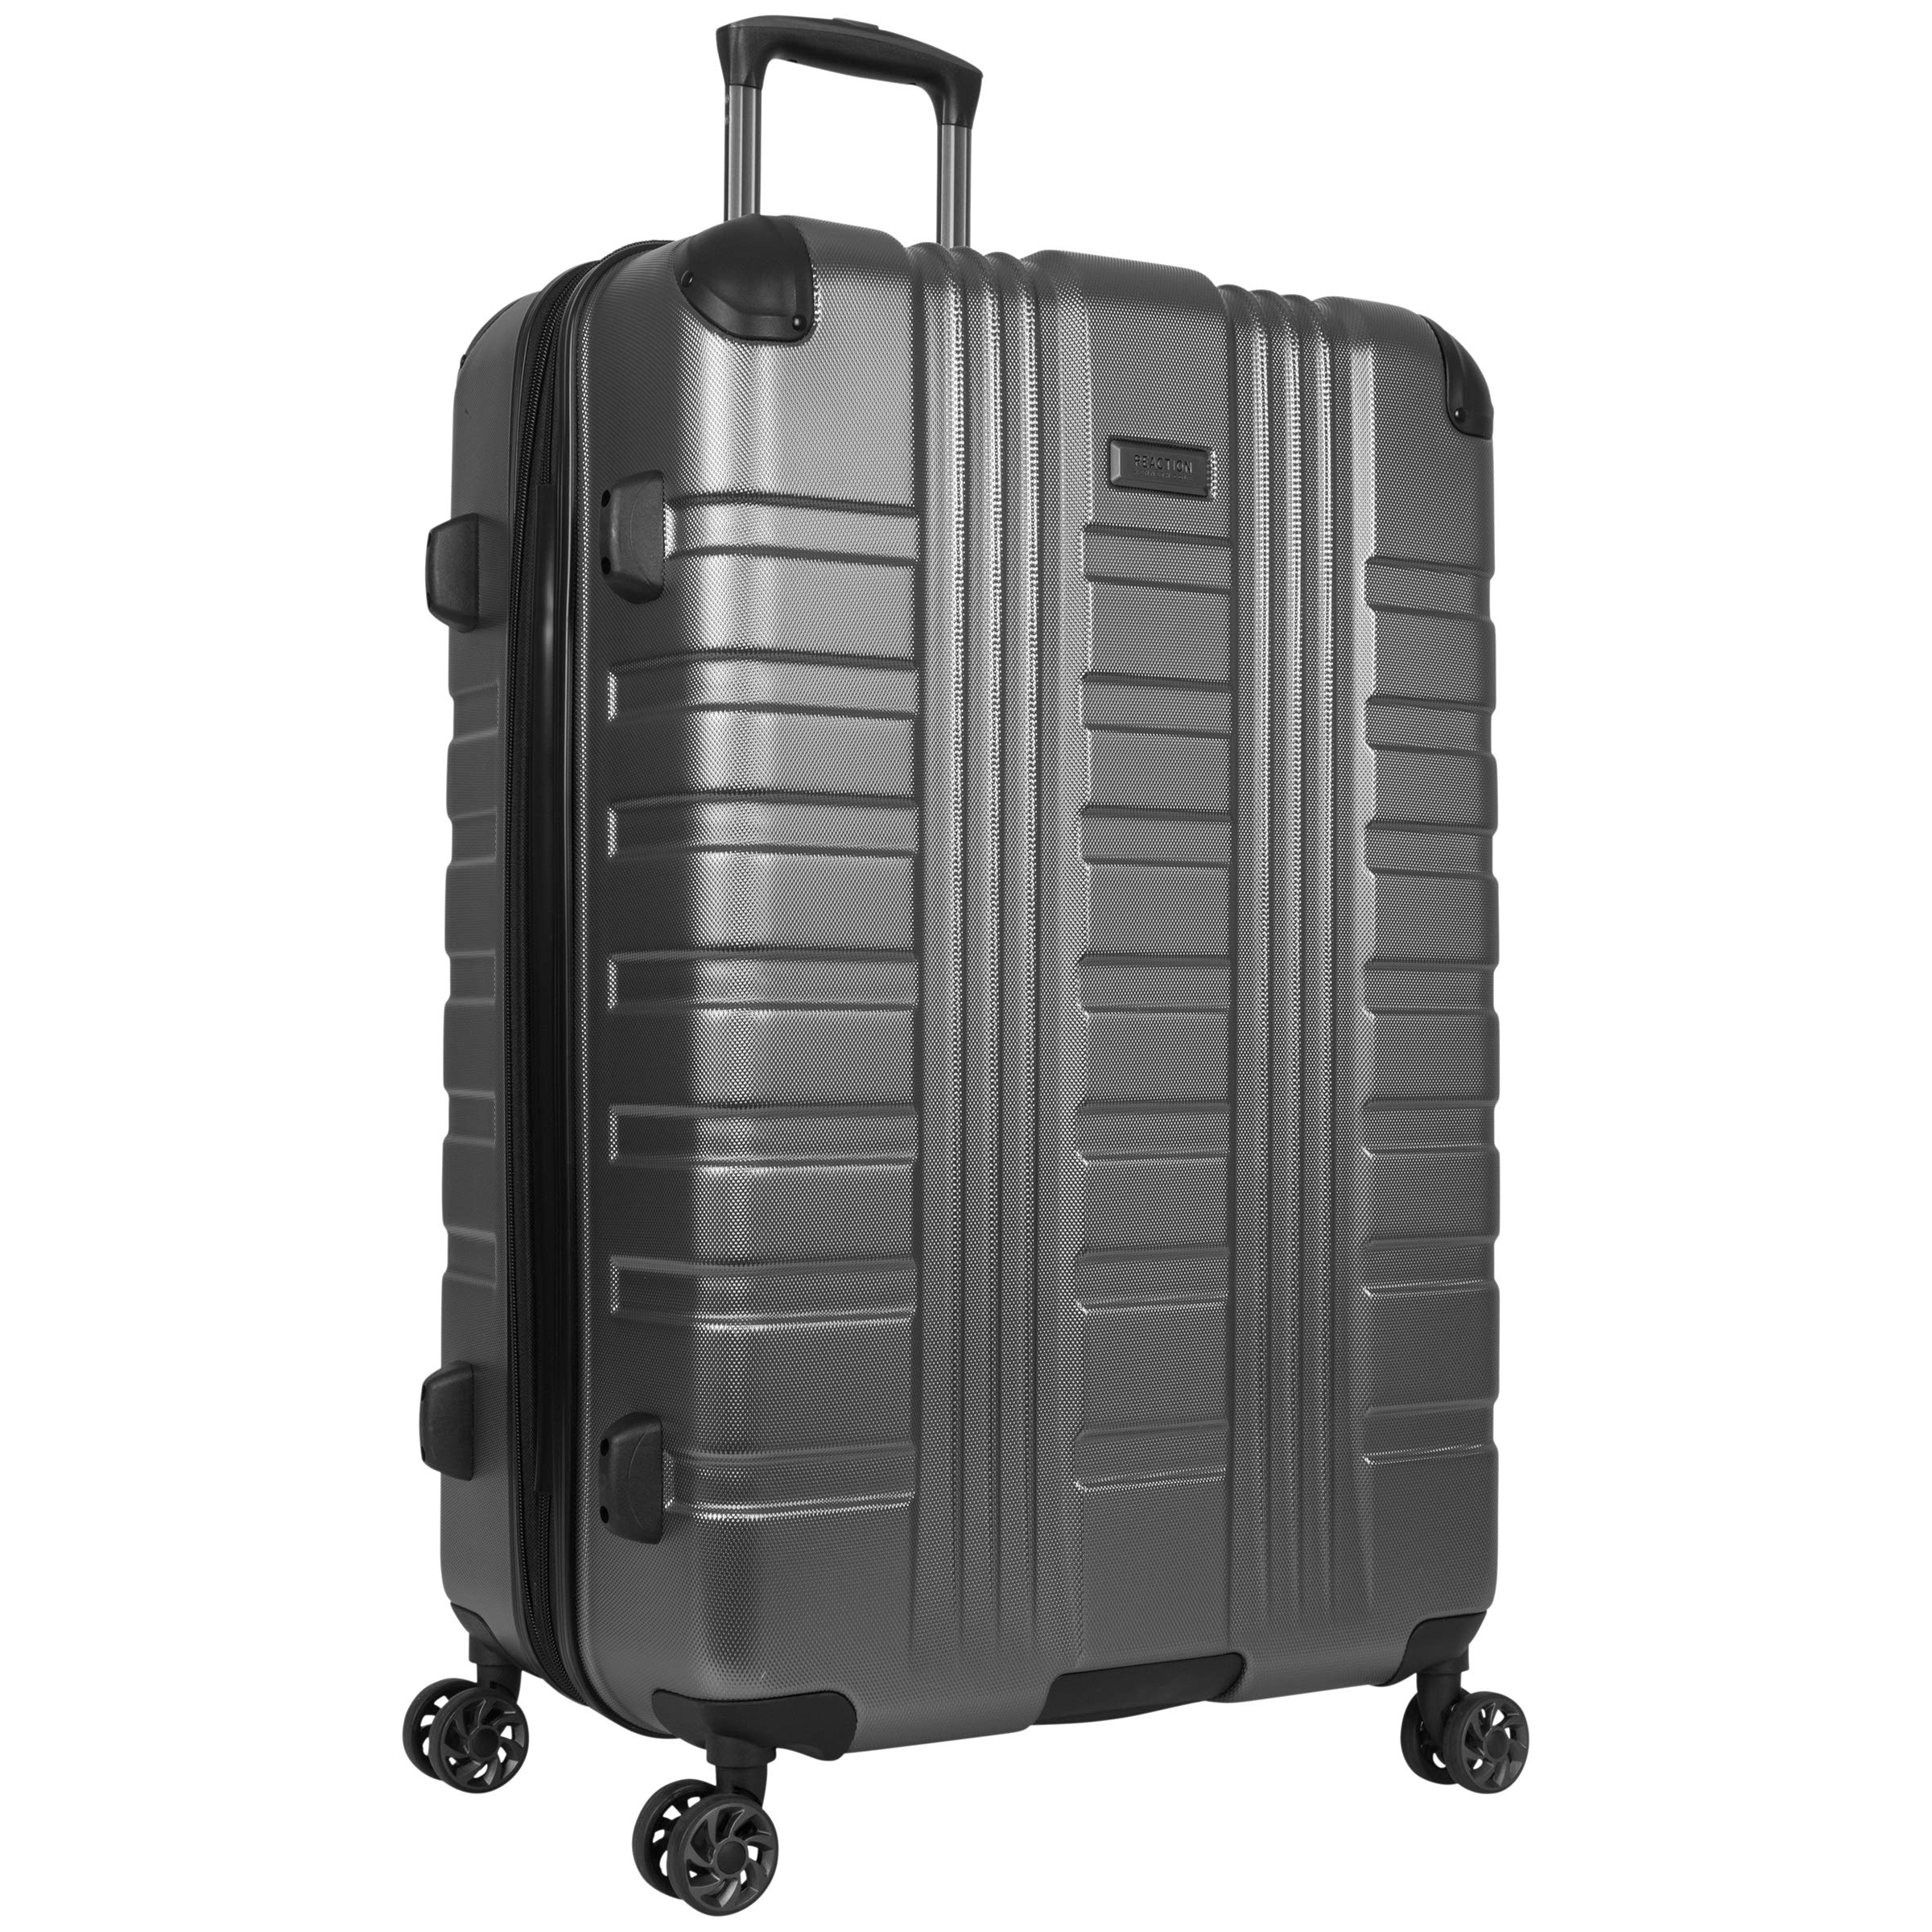 Kenneth Cole Reaction Scott's Corner 28'' Hardside Expandable Spinner 8-Wheel Luggage with TSA Locks, Charcoal